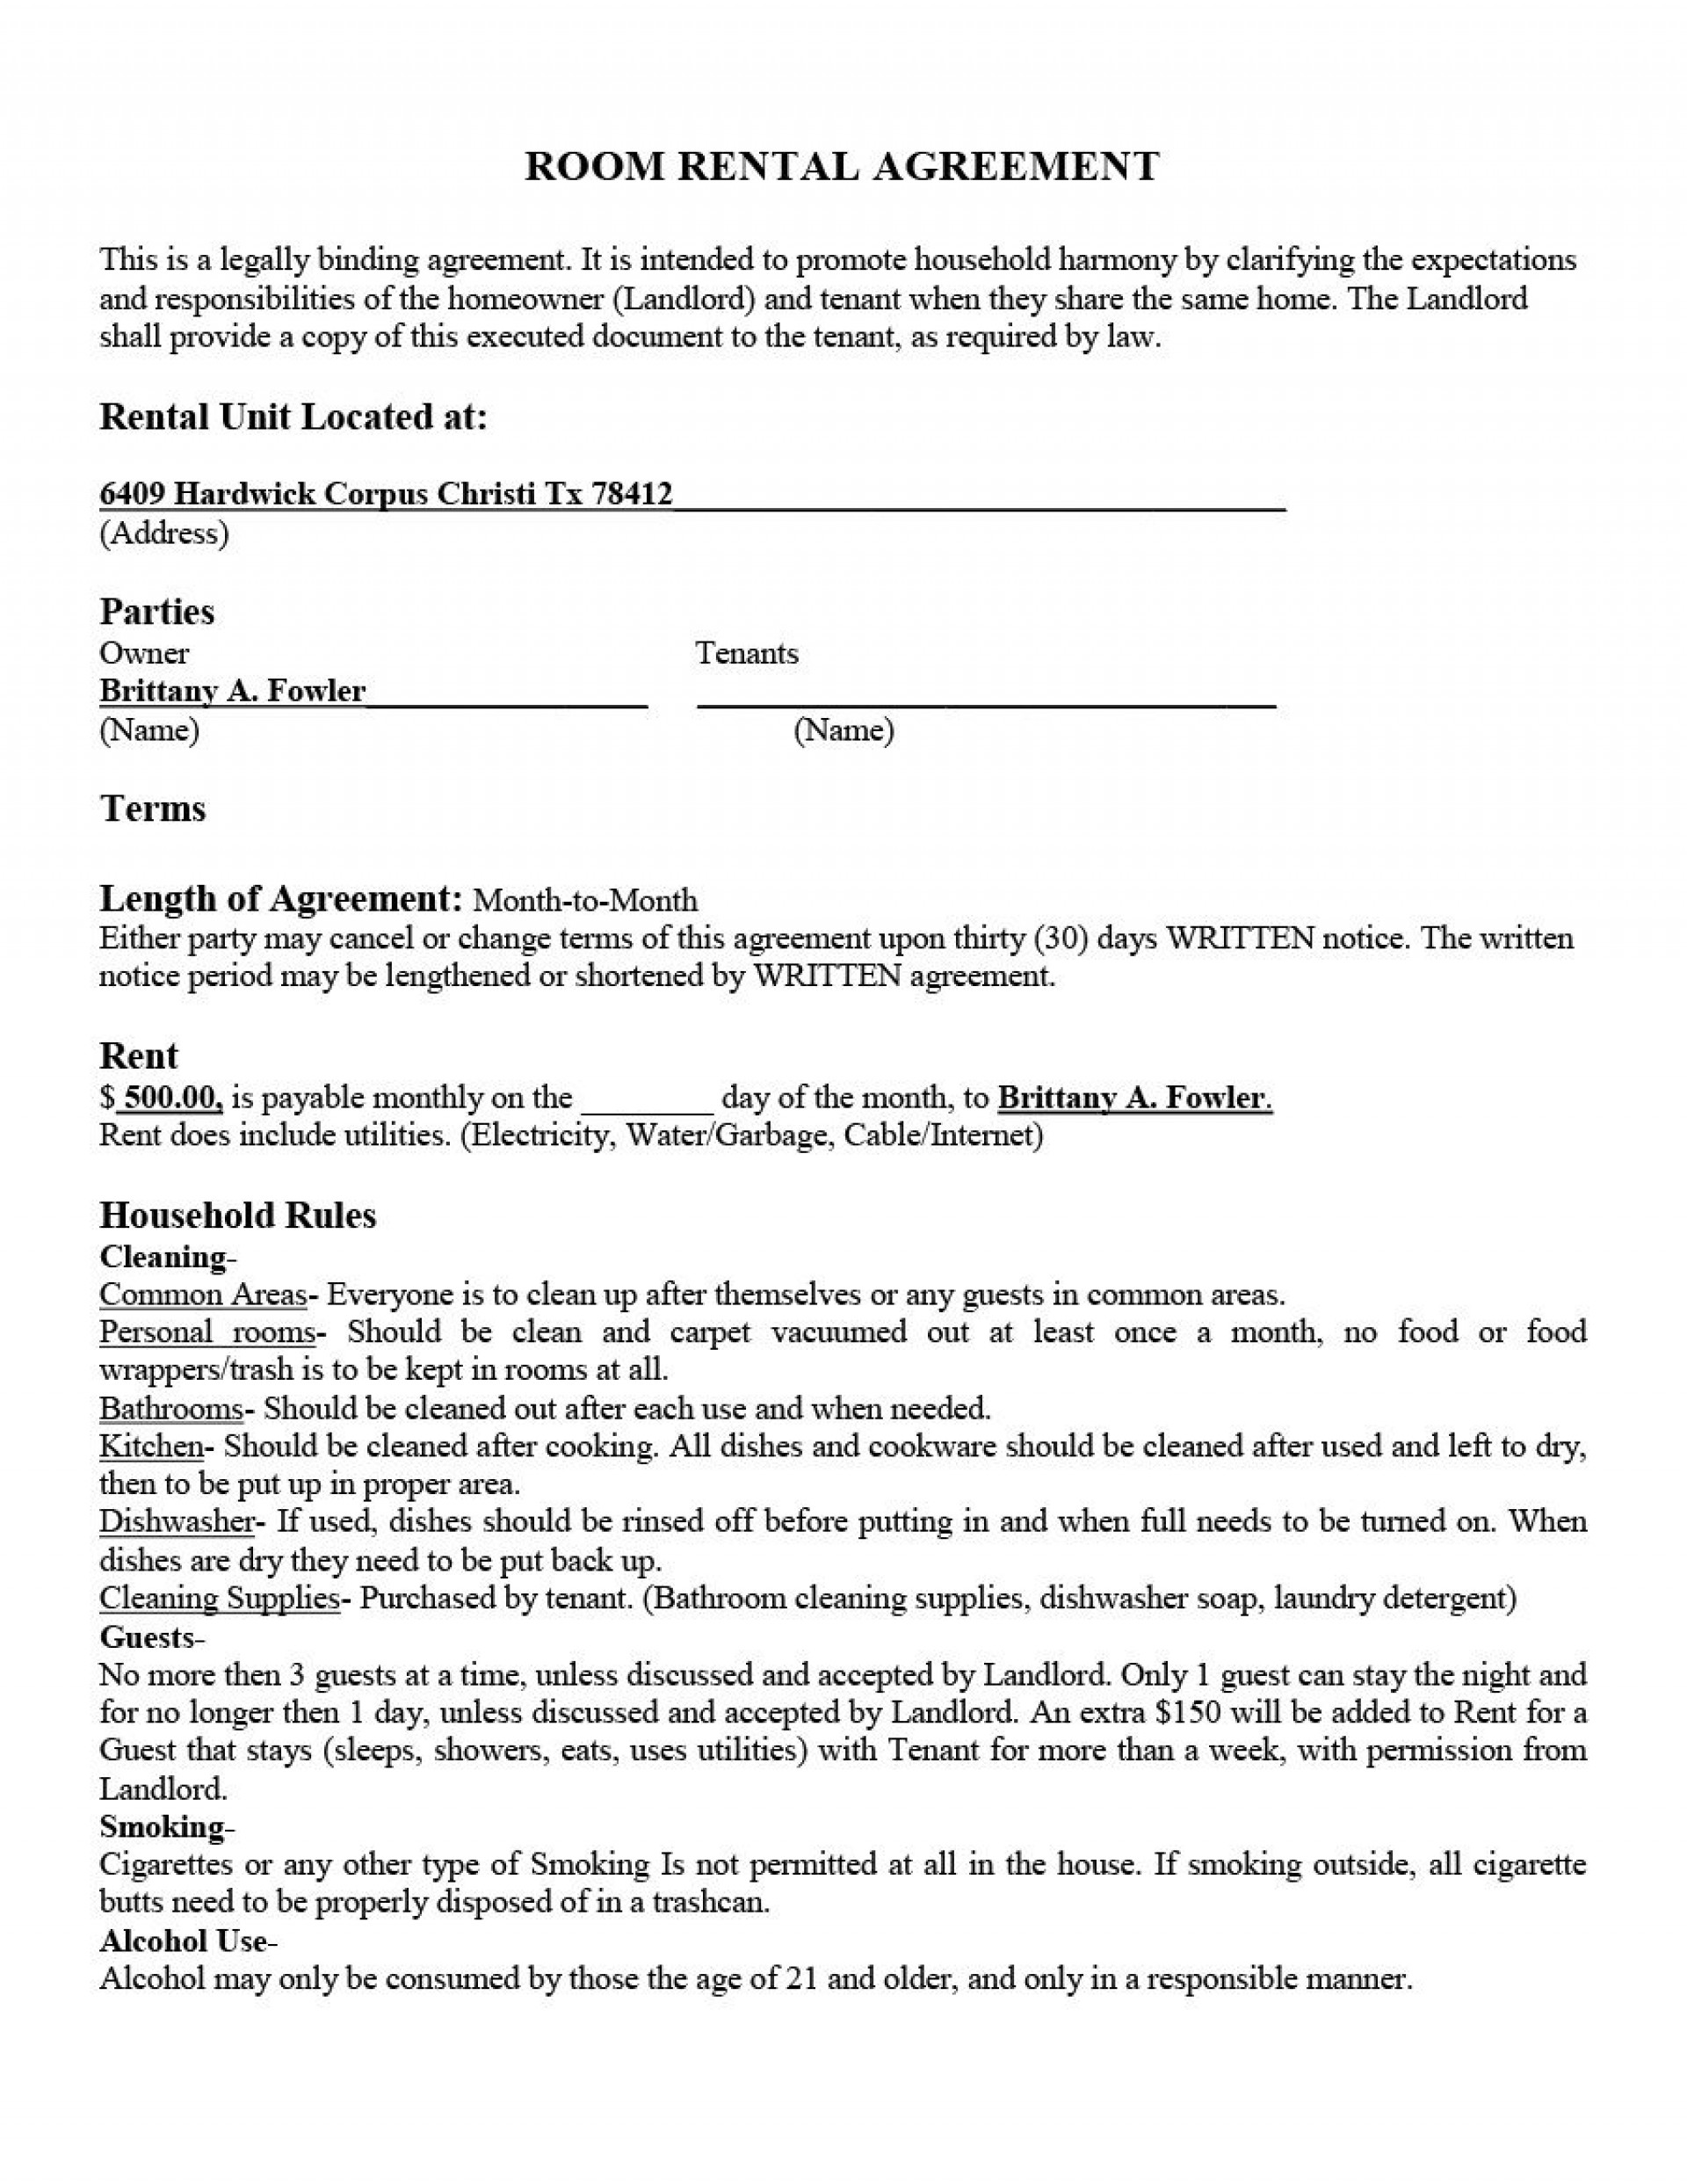 007 Stirring Sample House Rental Agreement Template Image  Contract Lease1920